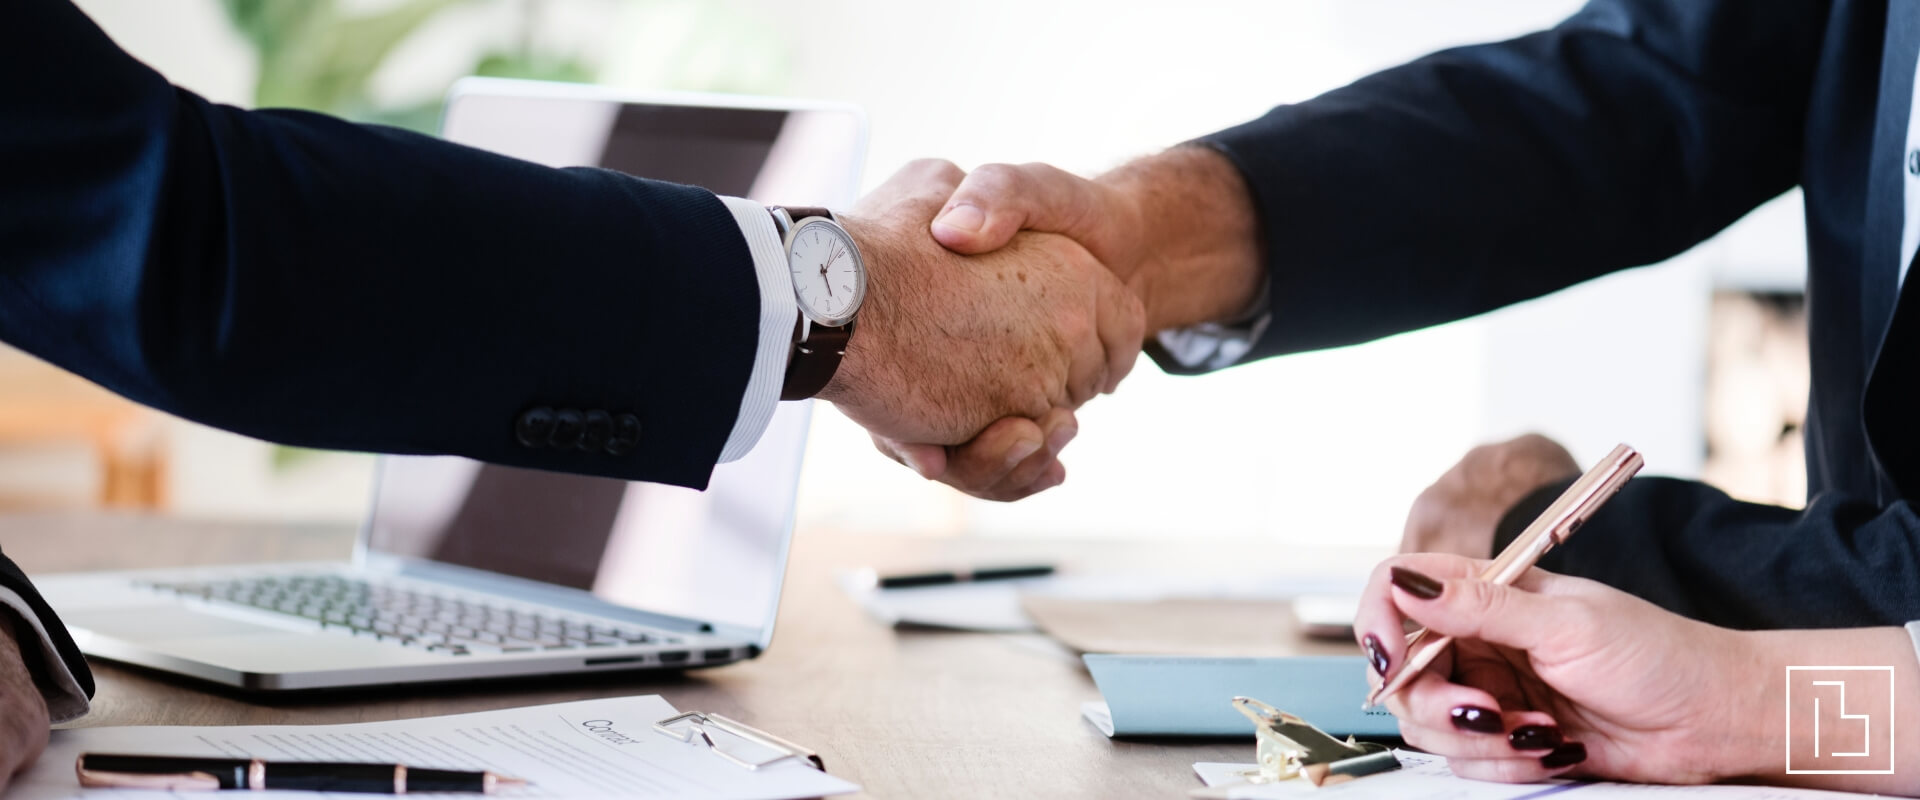 people shaking hands over a real estate deal - Beachworks LLC